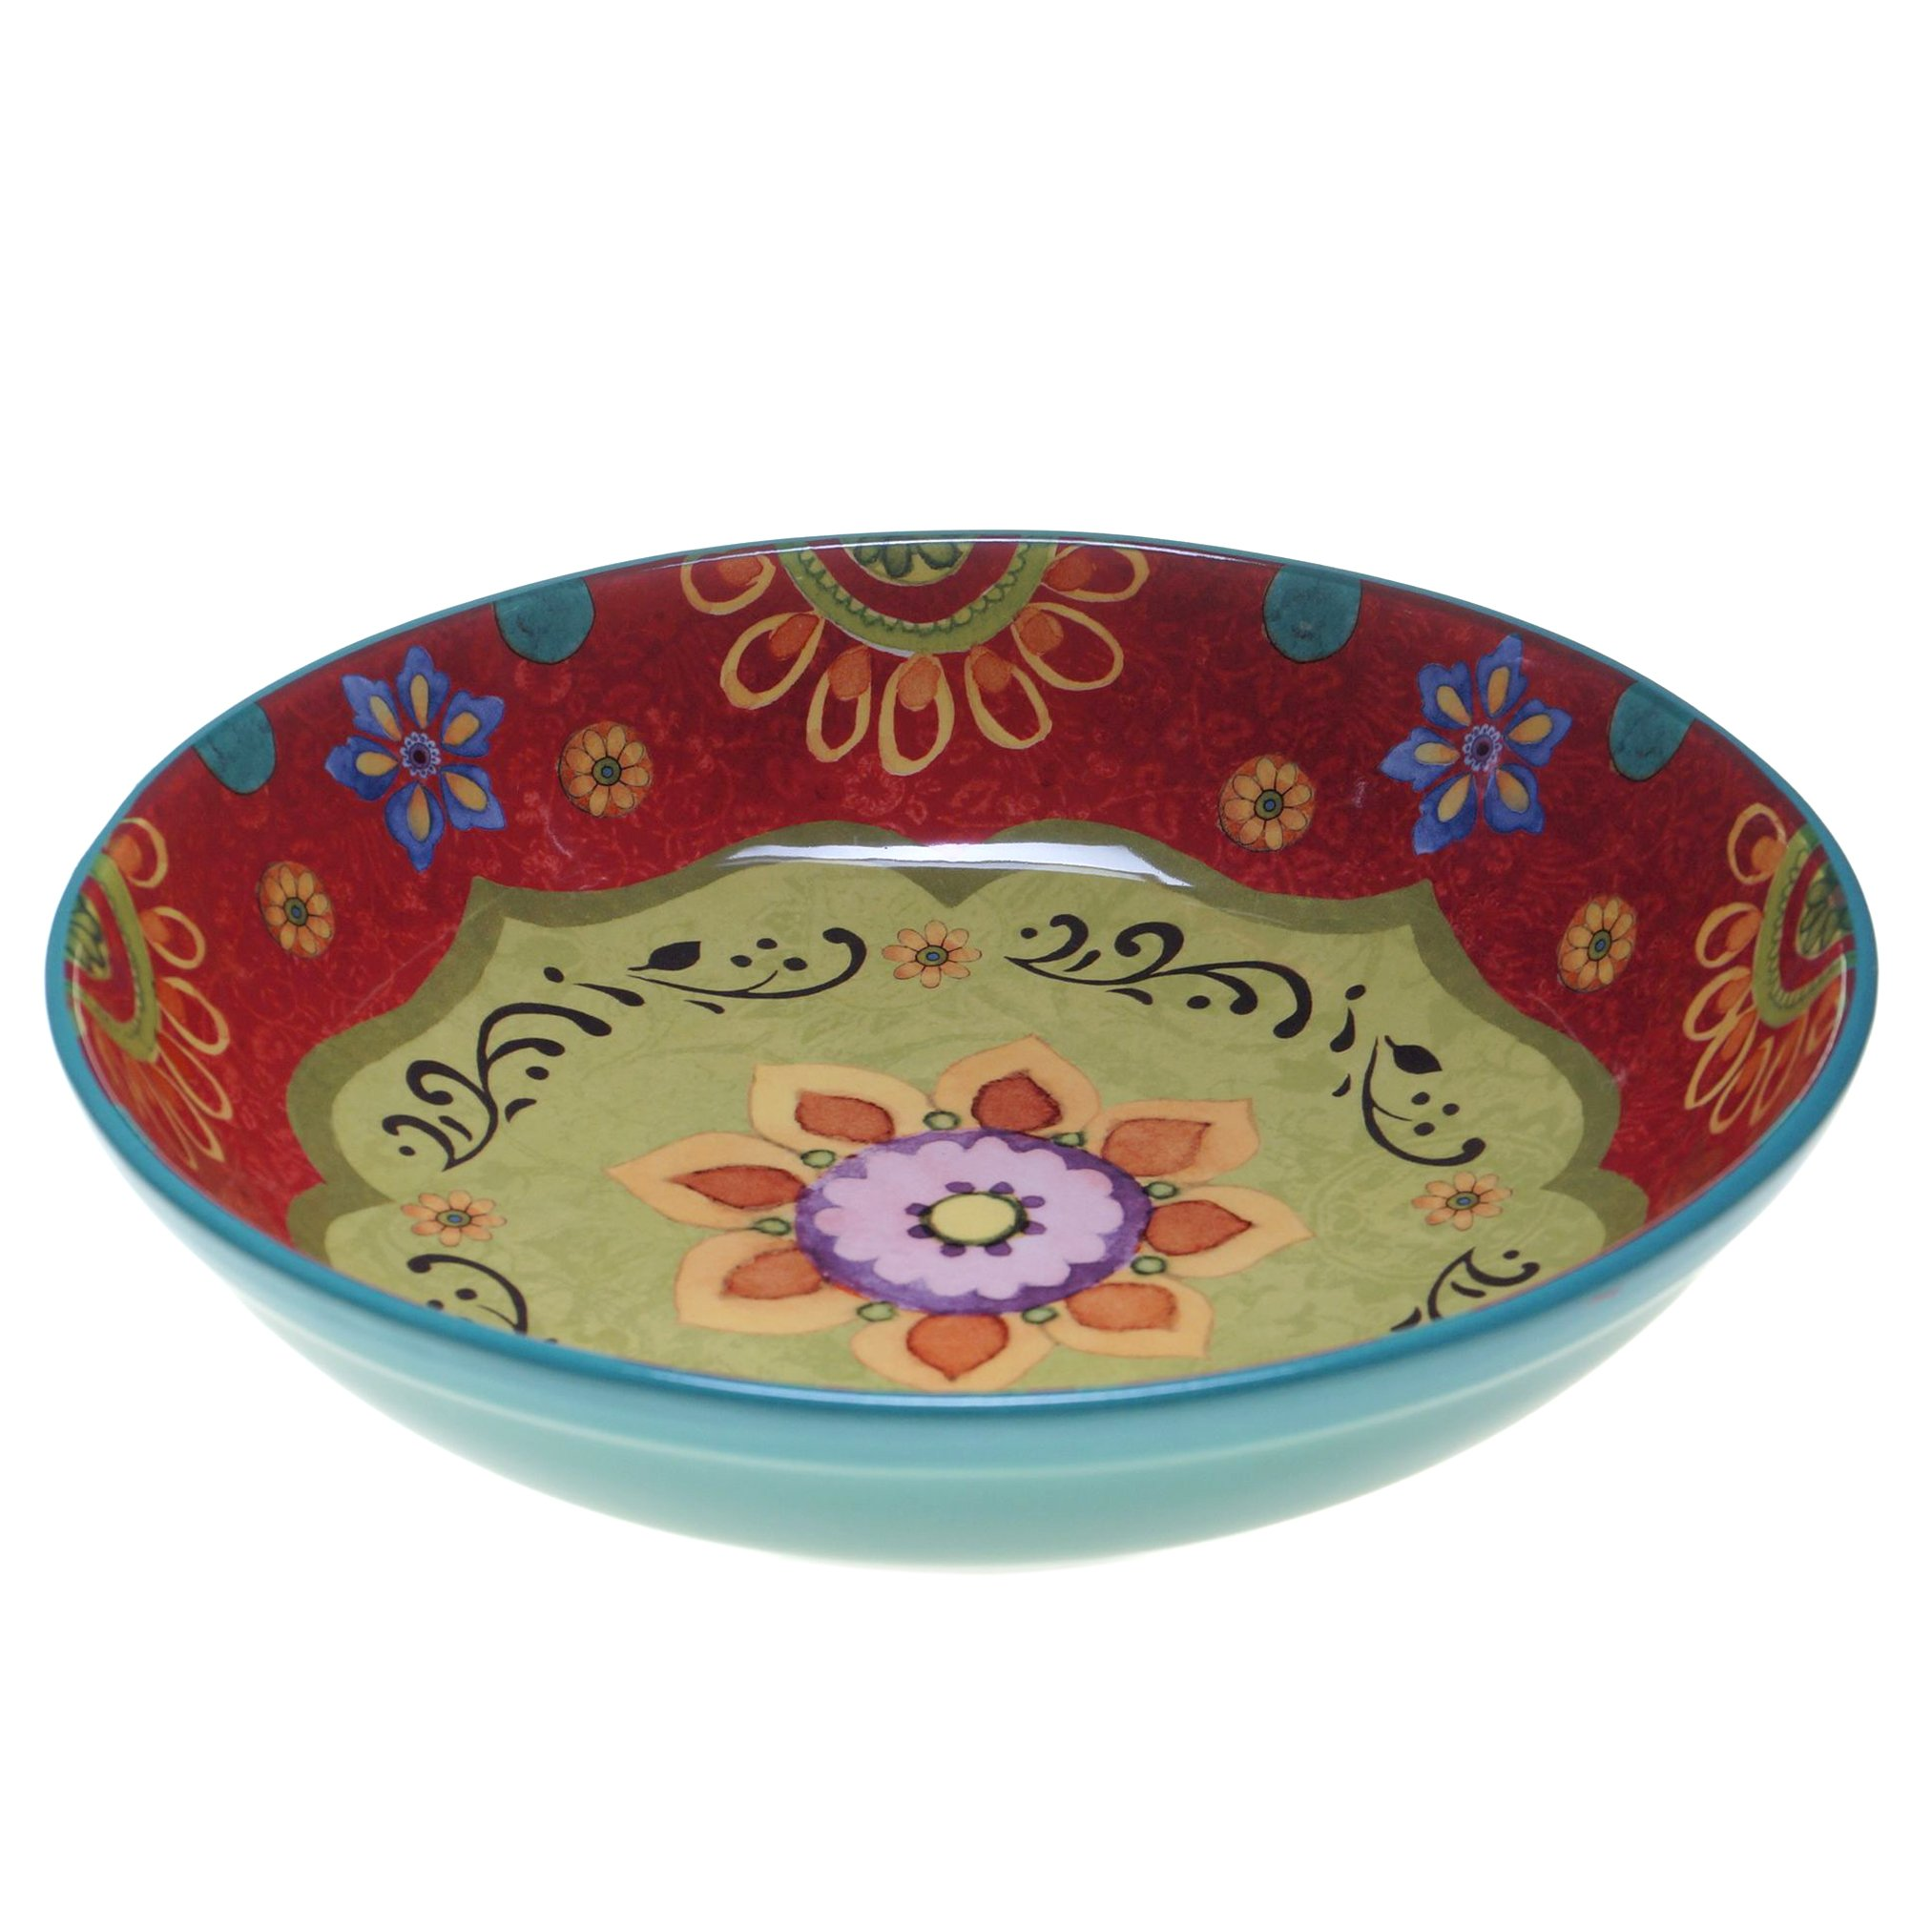 Certified International 22467 Tunisian Sunset Serving/Pasta Bowl, 13.25'' x 3'', Multicolor